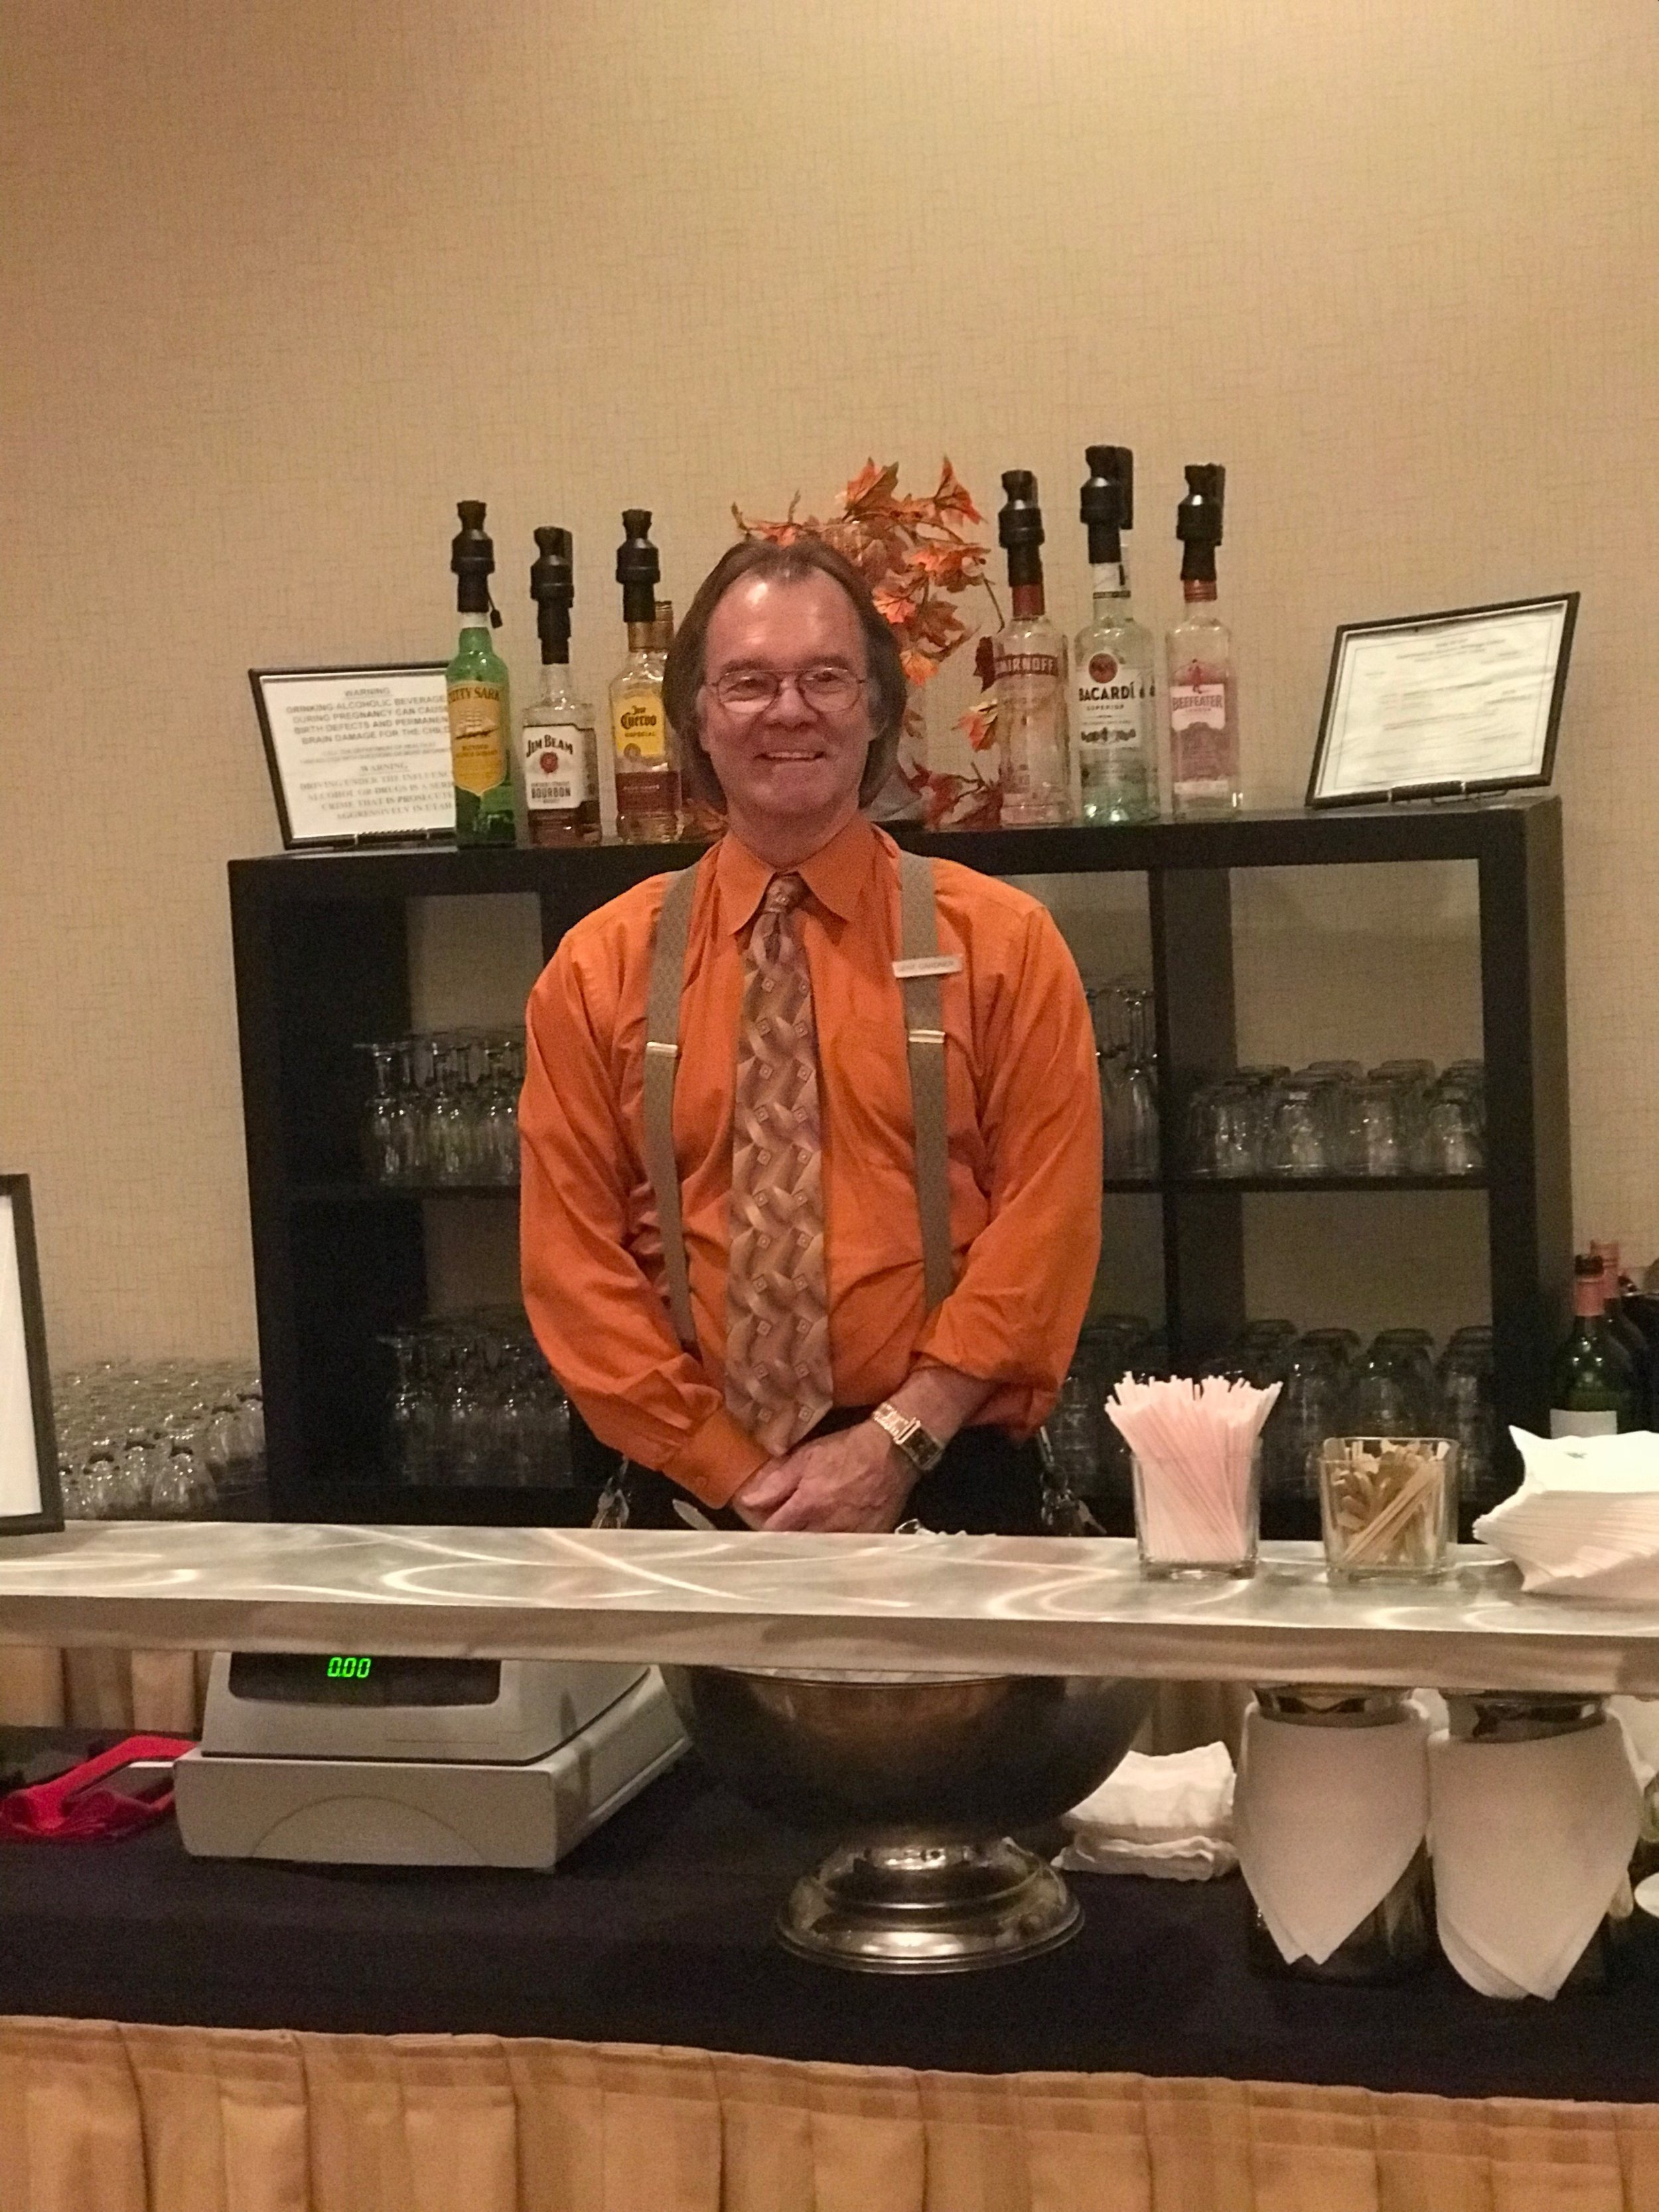 Our Director of Banquets Gene helping with the cash bar.